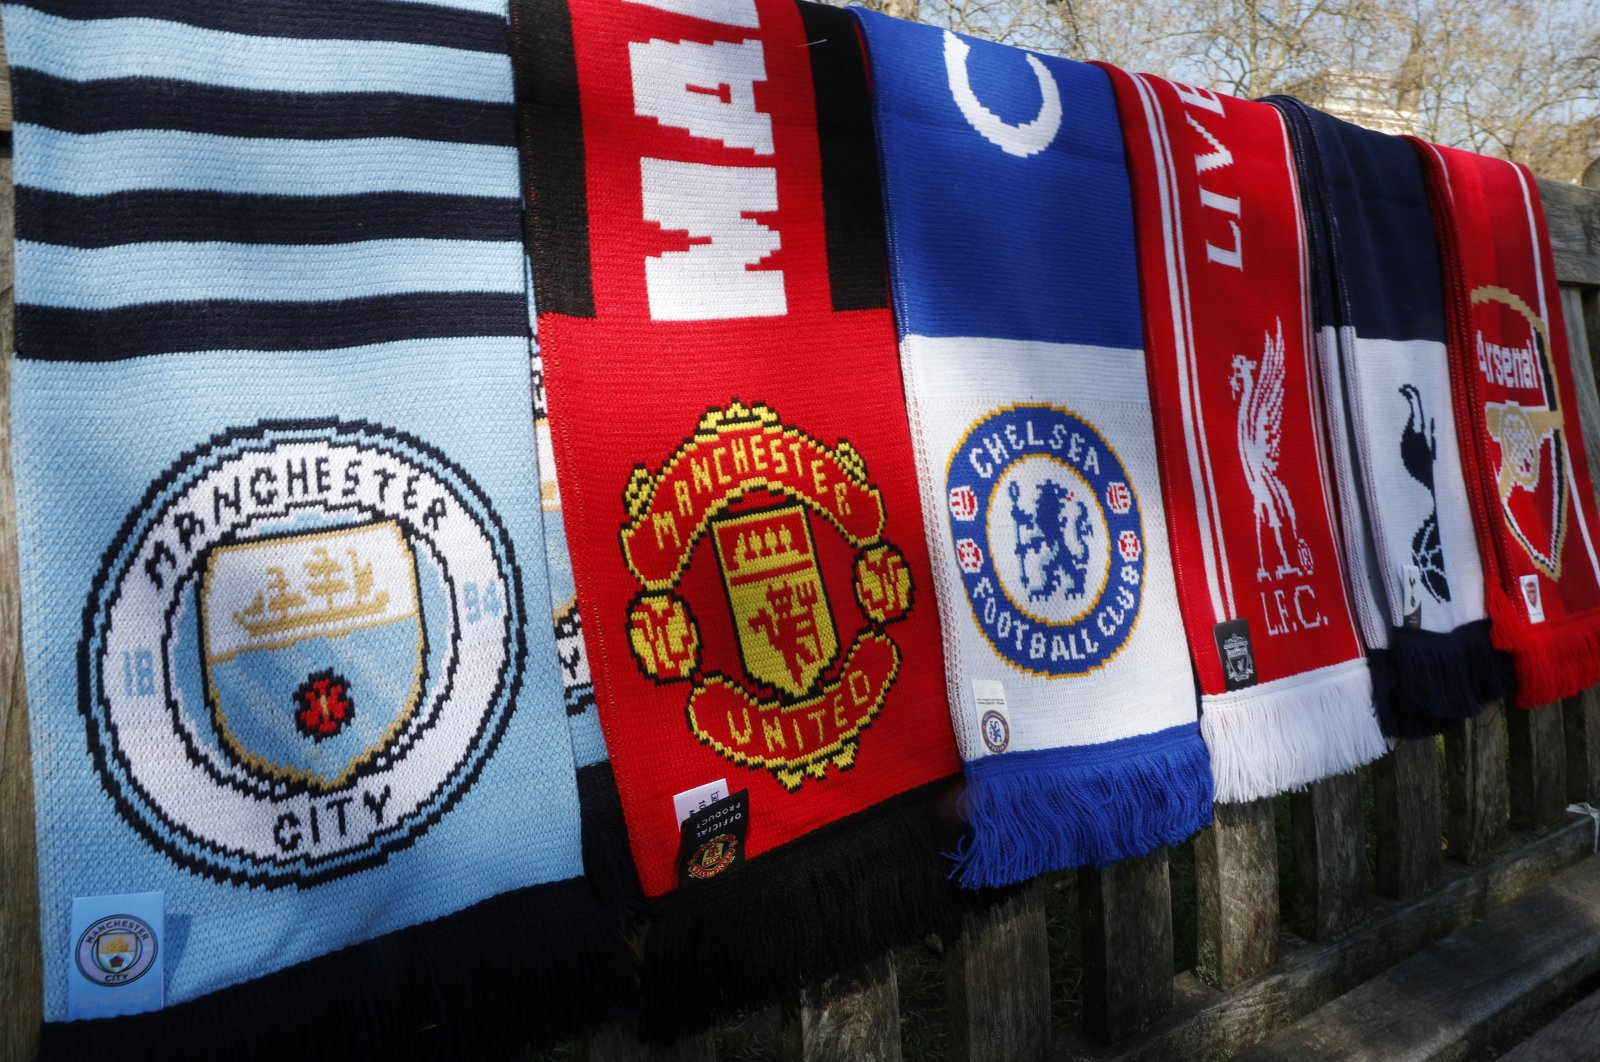 A selection of scarves of the Premier League giants in London, England, April 19, 2021. (AP Photo)